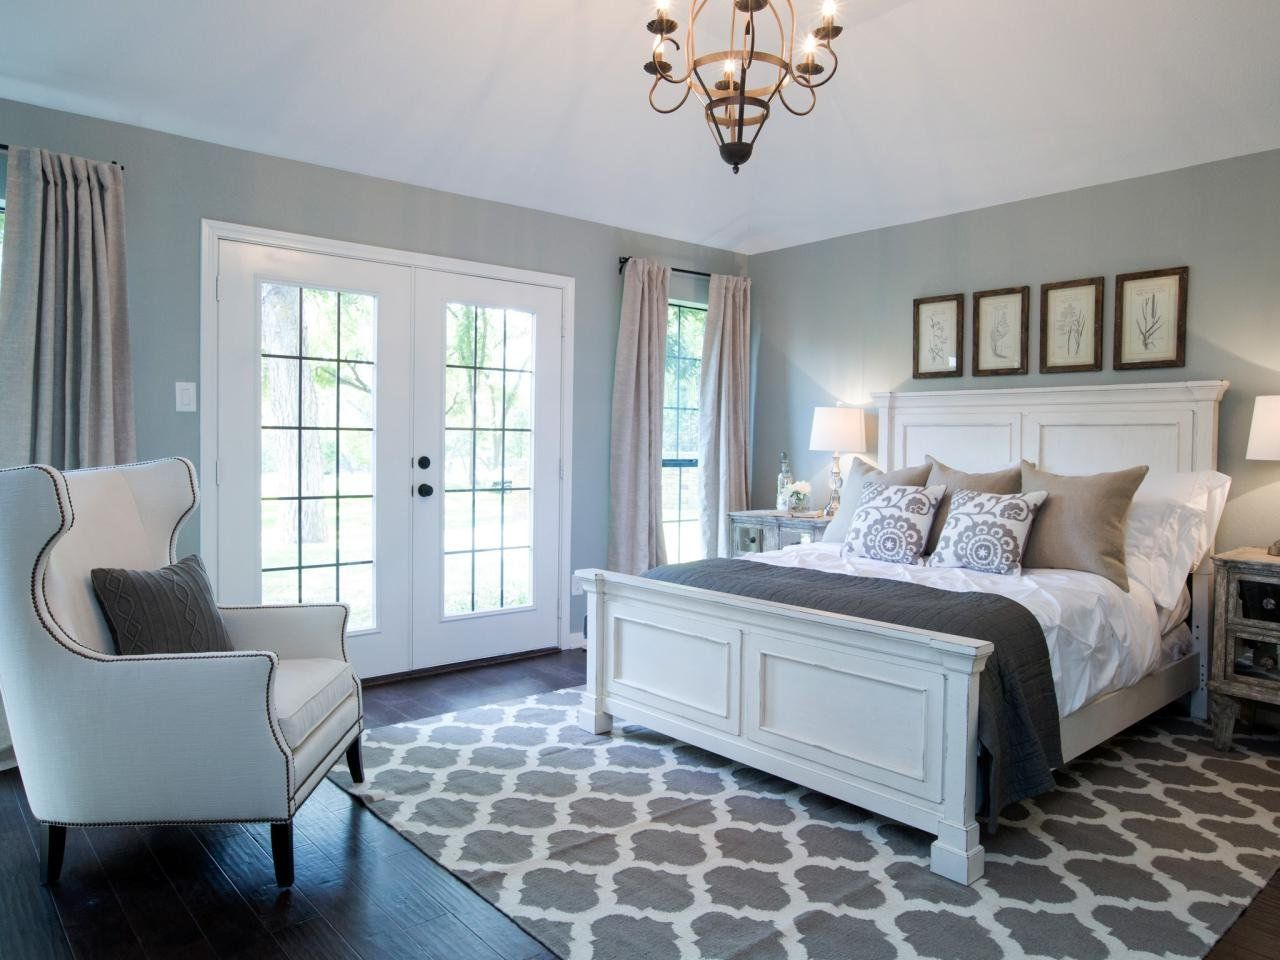 White And Silver Bedroom Black White And Gold Bedroom Blue And Tan Bedding  Grey Yellow Bedroom